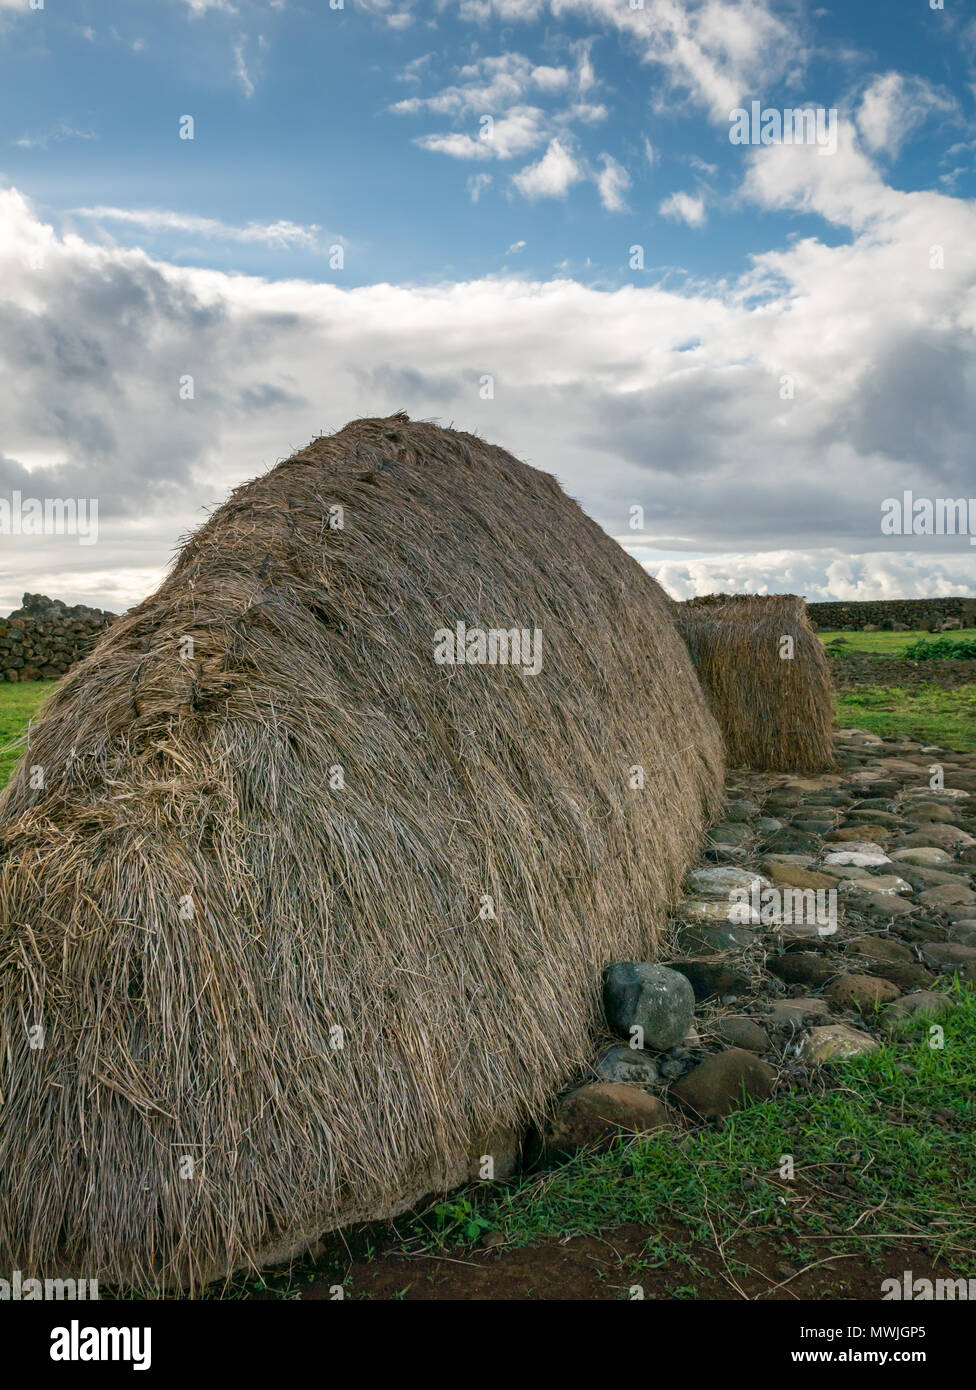 Reconstructed traditional thatched boat shaped house called Hare Paenga, Akahanga, Easter Island, Rapa Nui, Chile - Stock Image